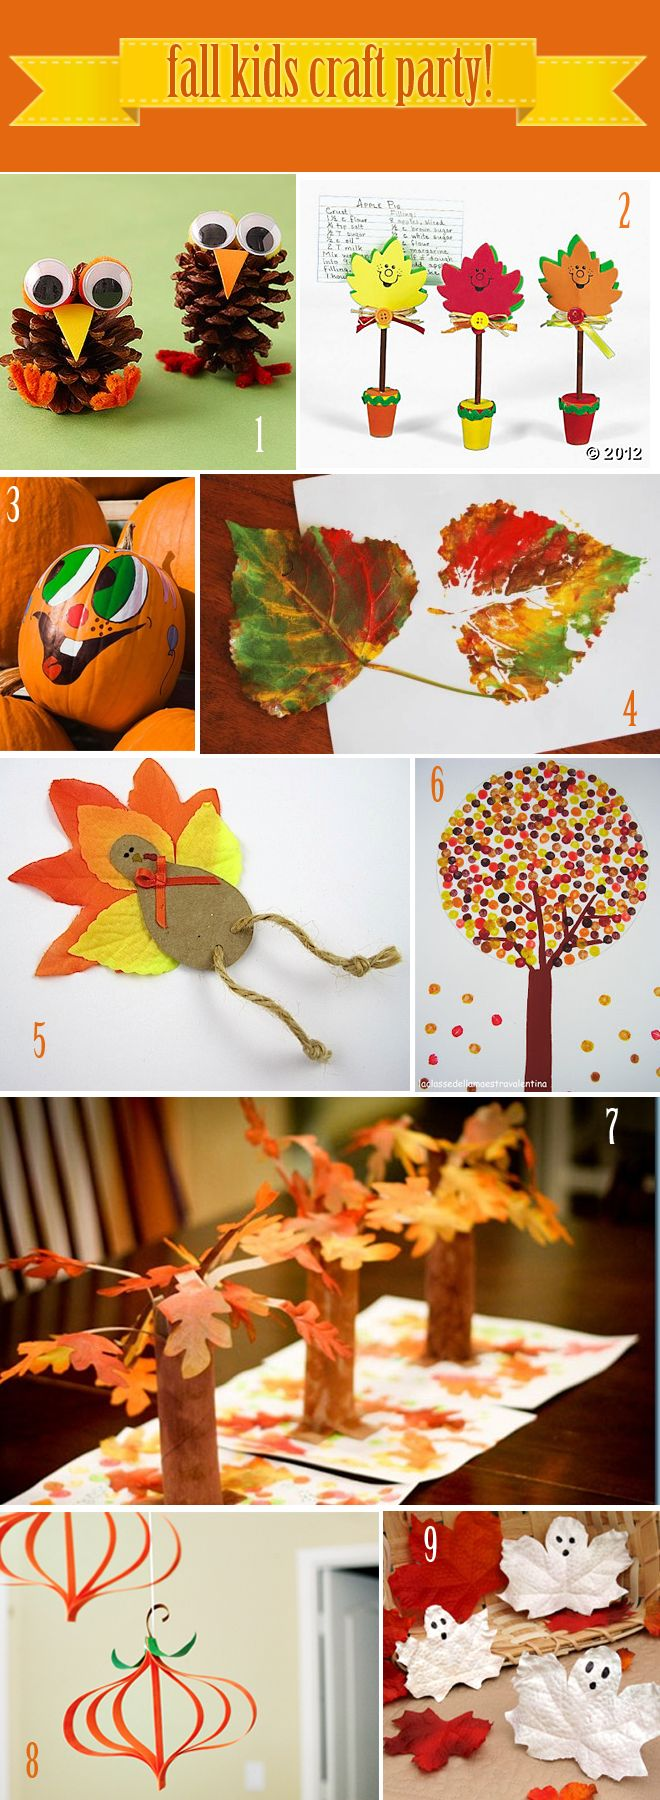 wouldn't this be a fun little mom and kids get together. fall craft party. who's in?